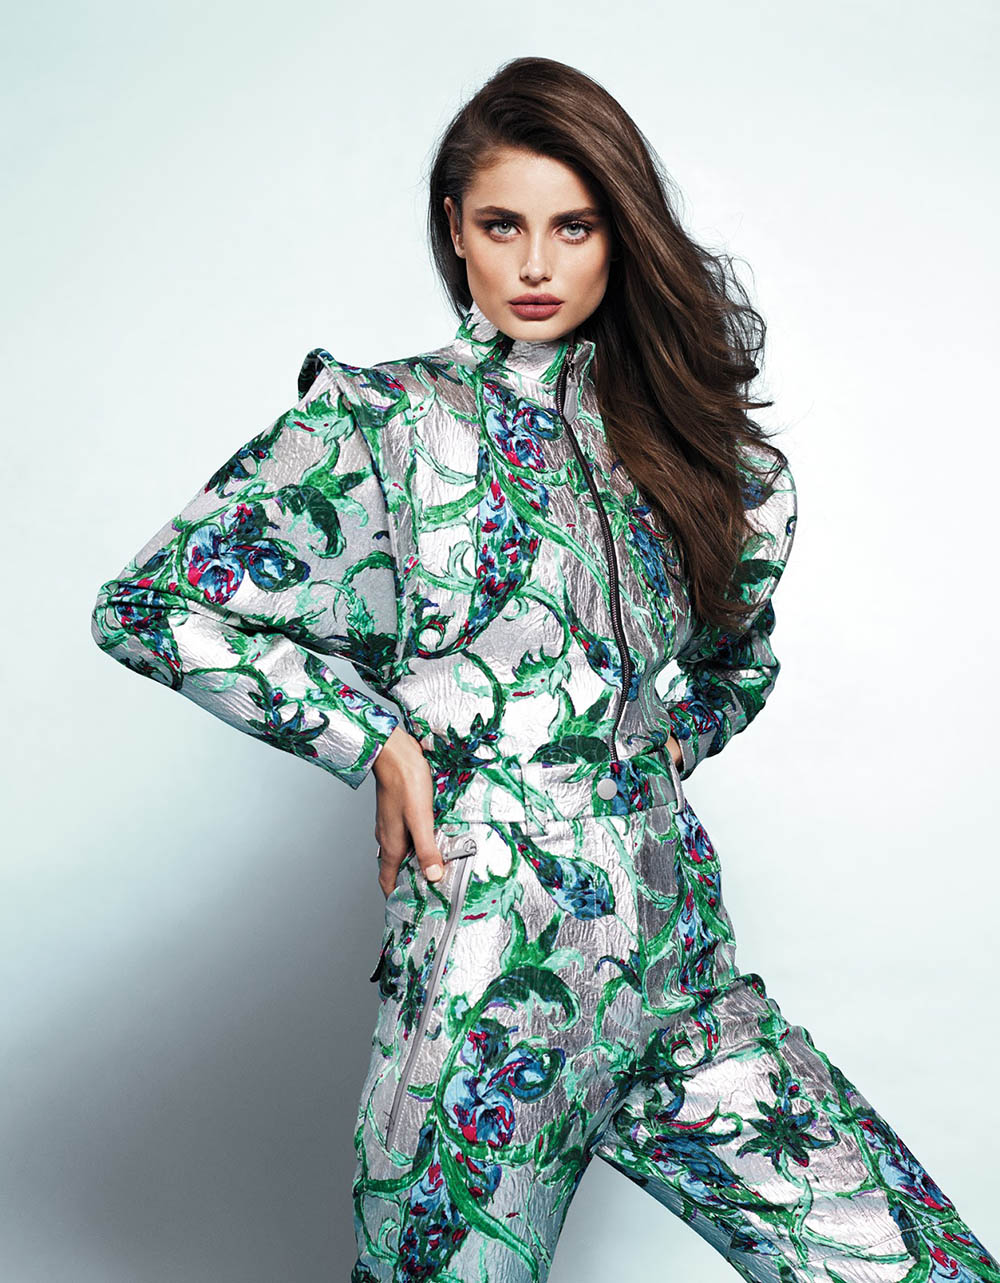 Taylor Hill covers Vogue Mexico March 2019 by Phil Poynter